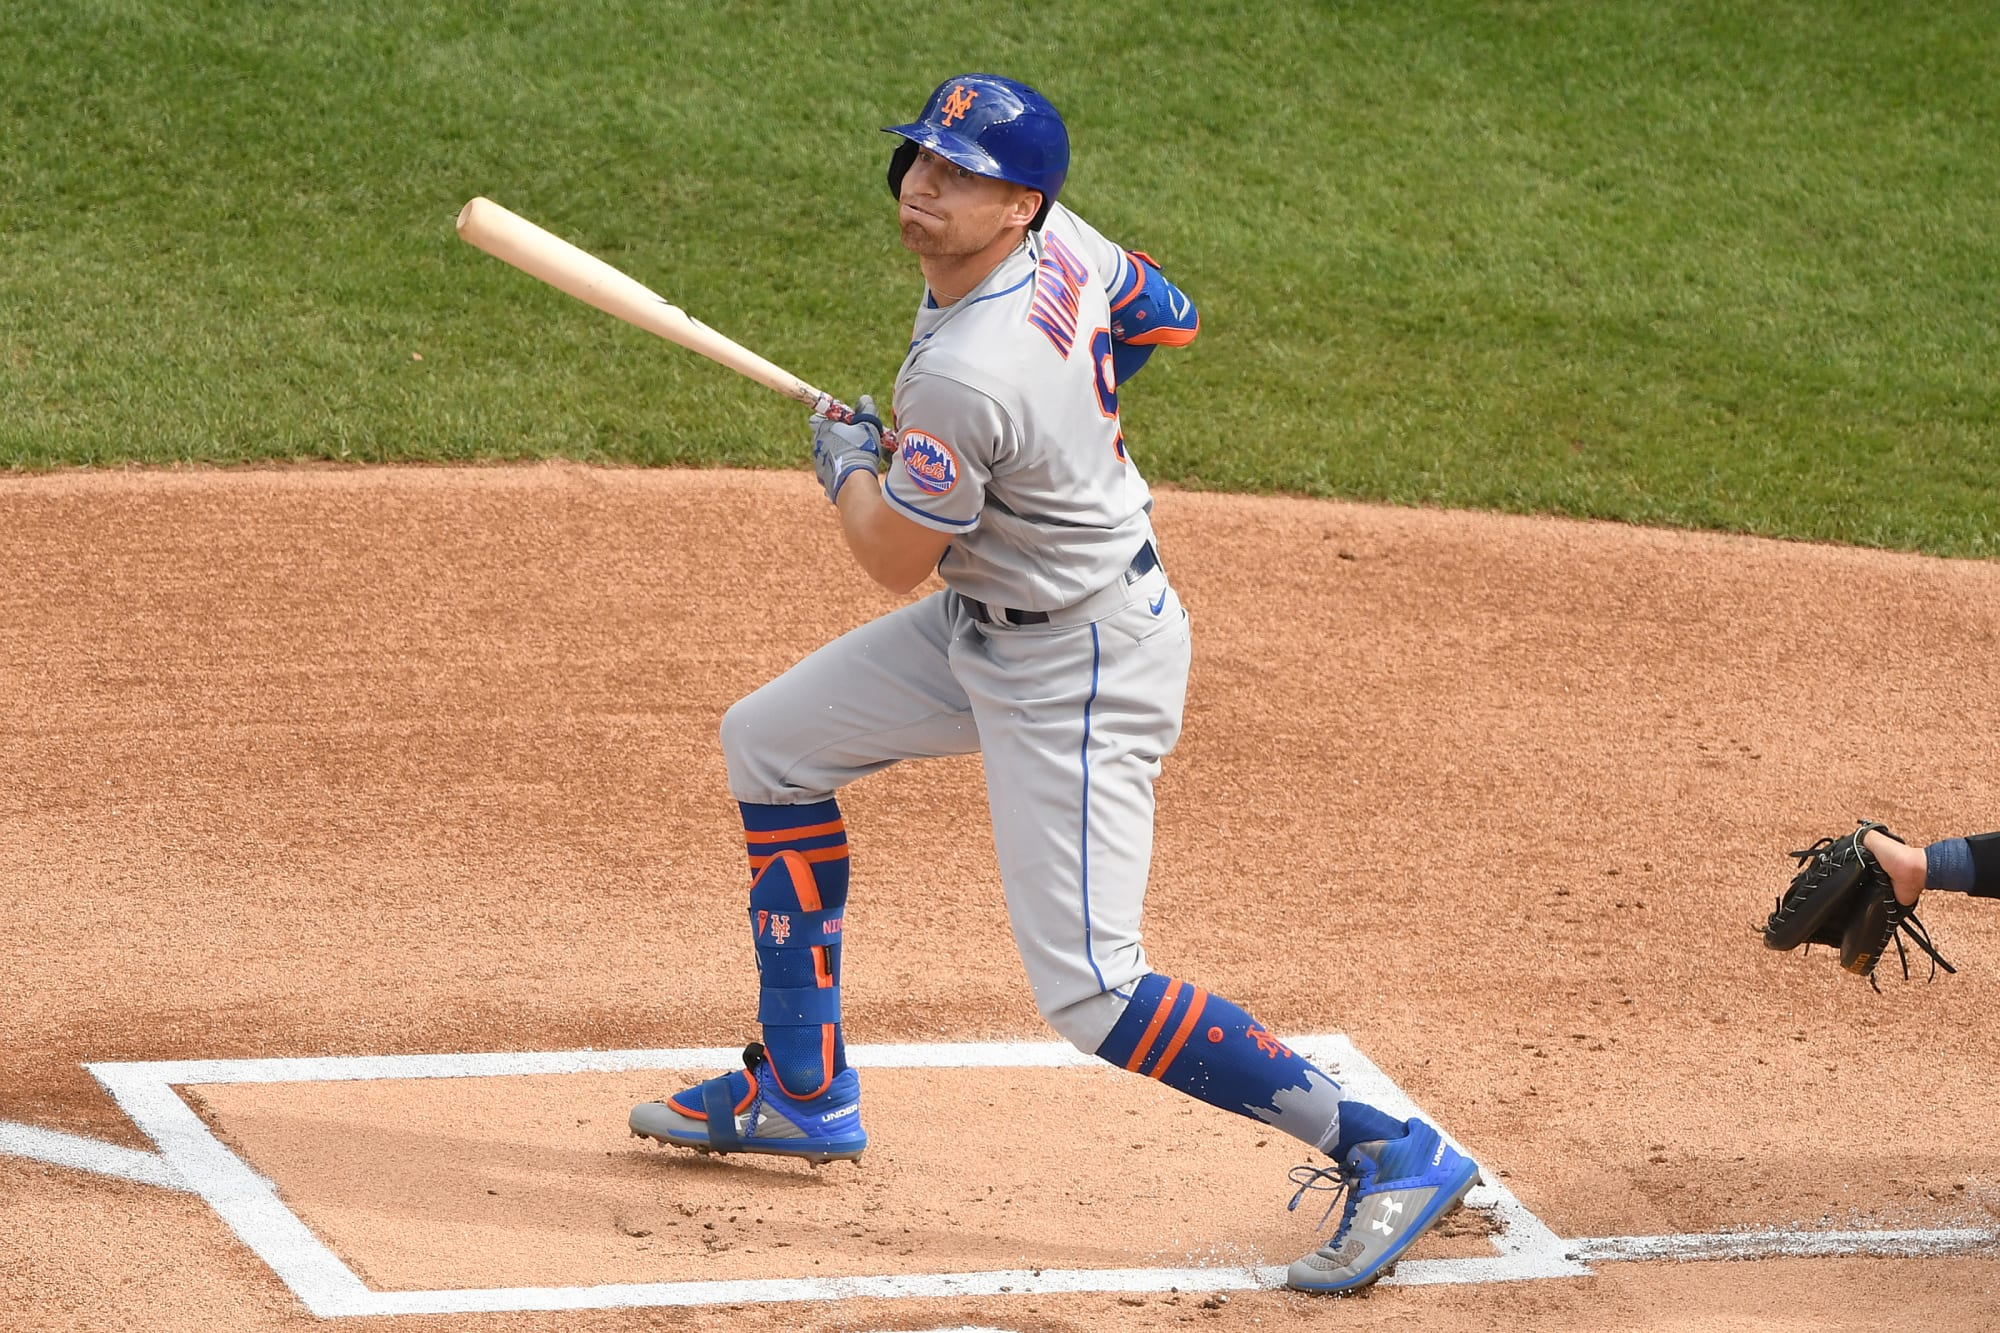 New York Mets finding offensive spark from unlikely suspect